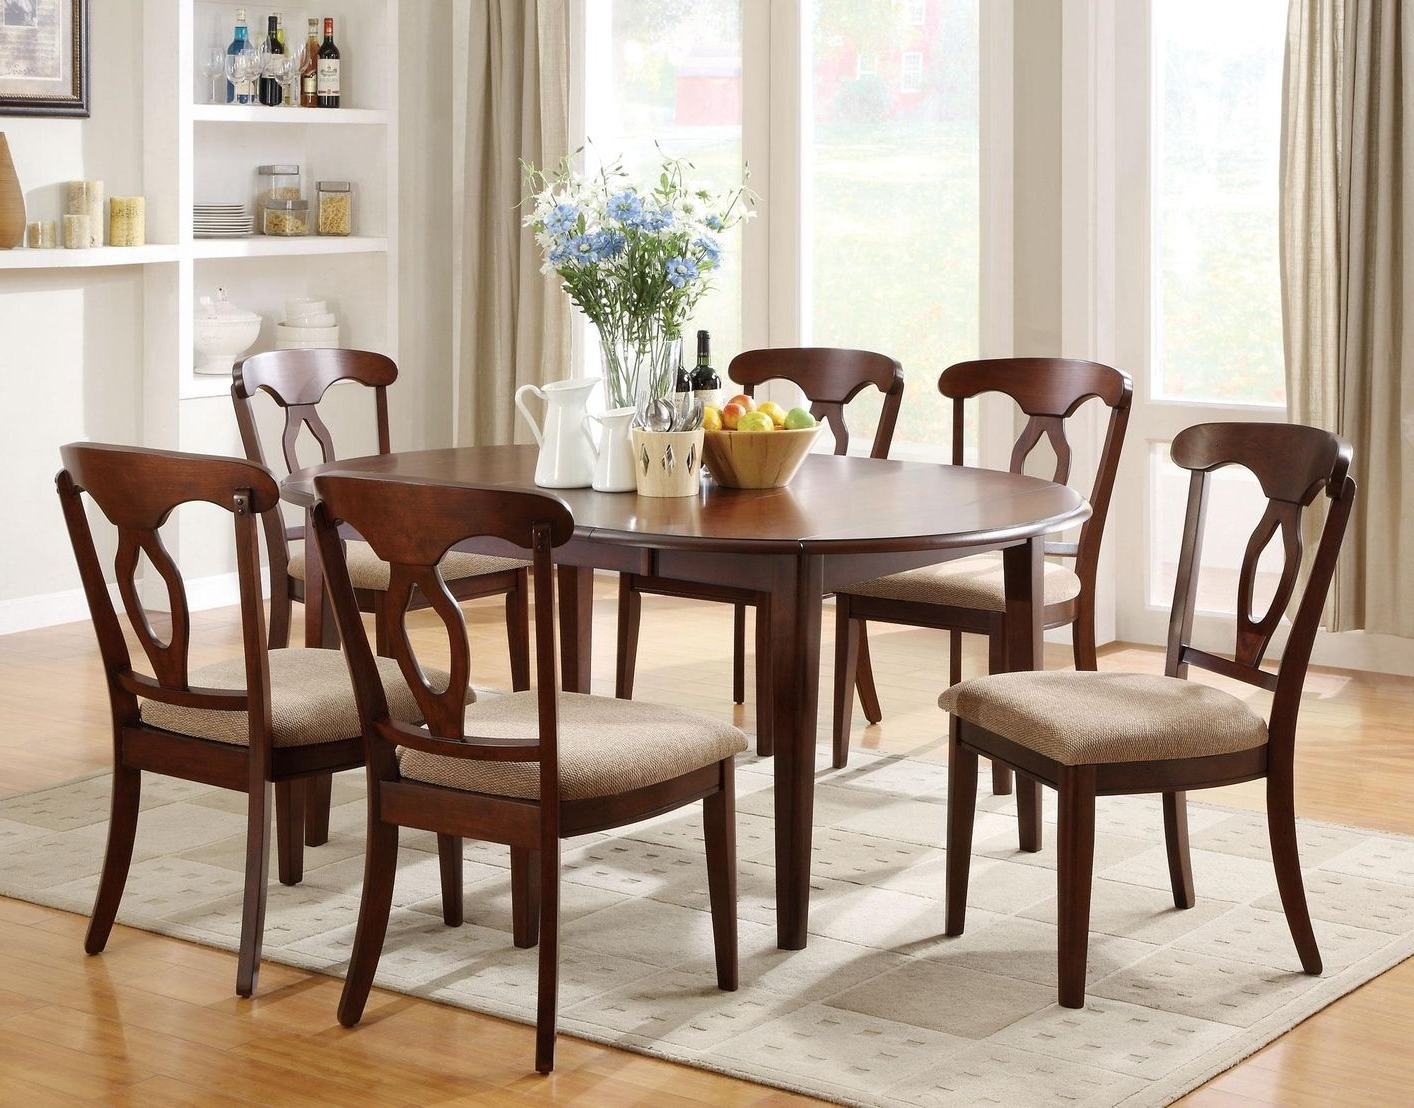 Latest Wooden Dining Room Chairs Decor — Bluehawkboosters Home Design With Regard To Dark Wood Dining Tables And Chairs (View 21 of 25)